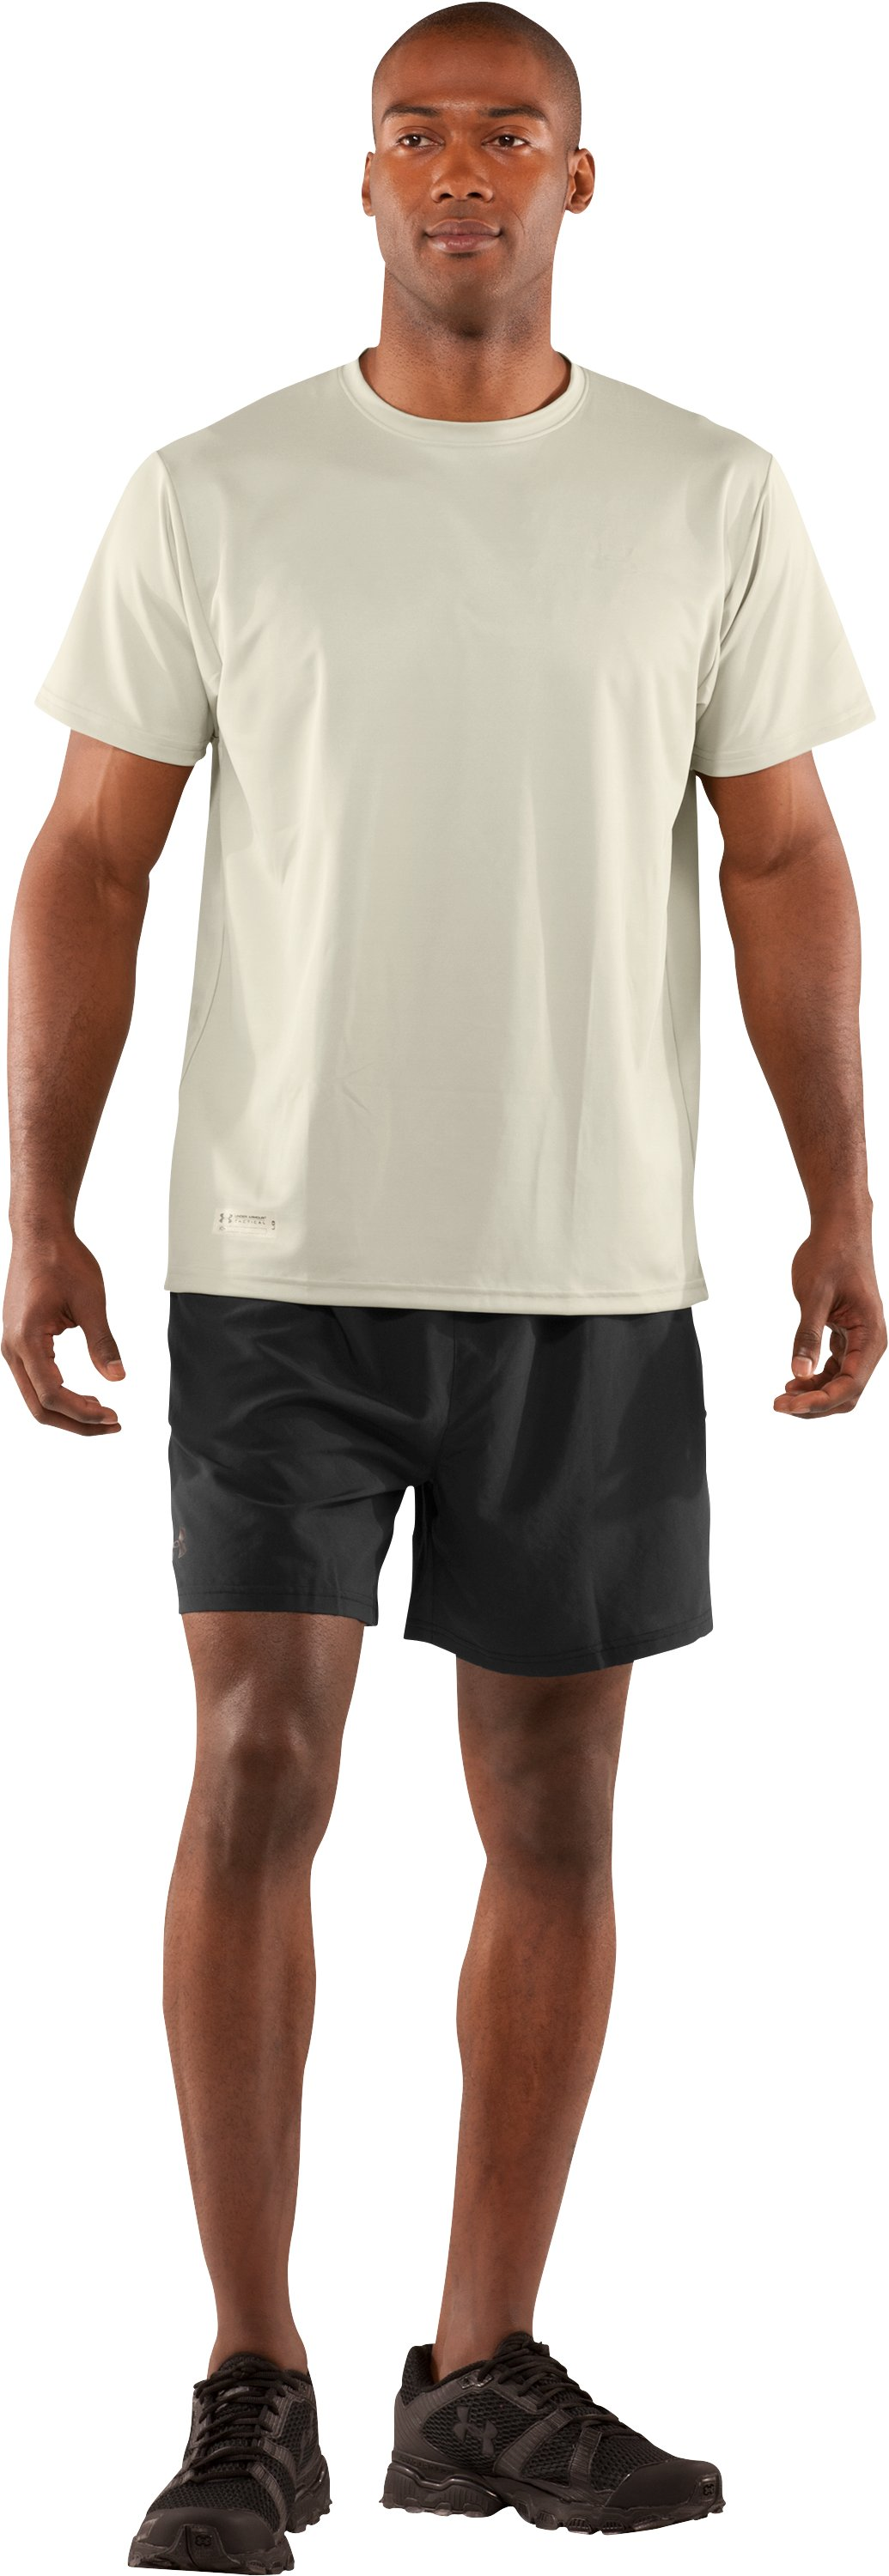 Men's UA HeatGear® Tactical Short Sleeve T-Shirt, Desert Sand, zoomed image